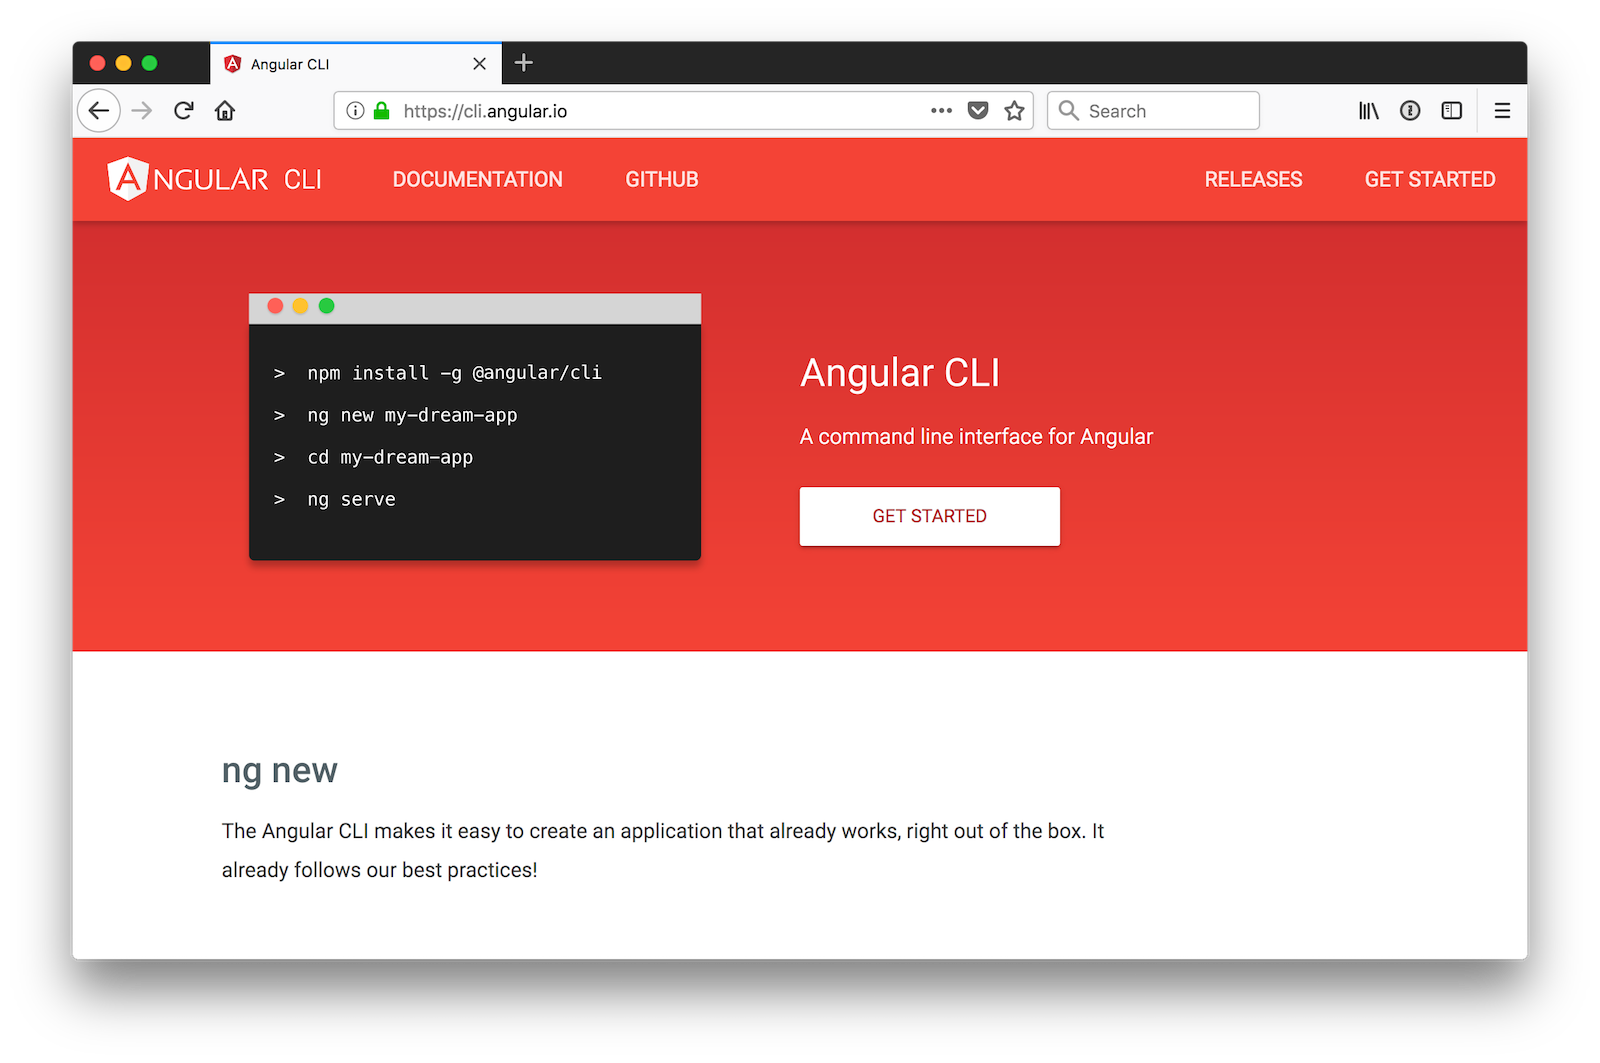 Angular CLI Homepage